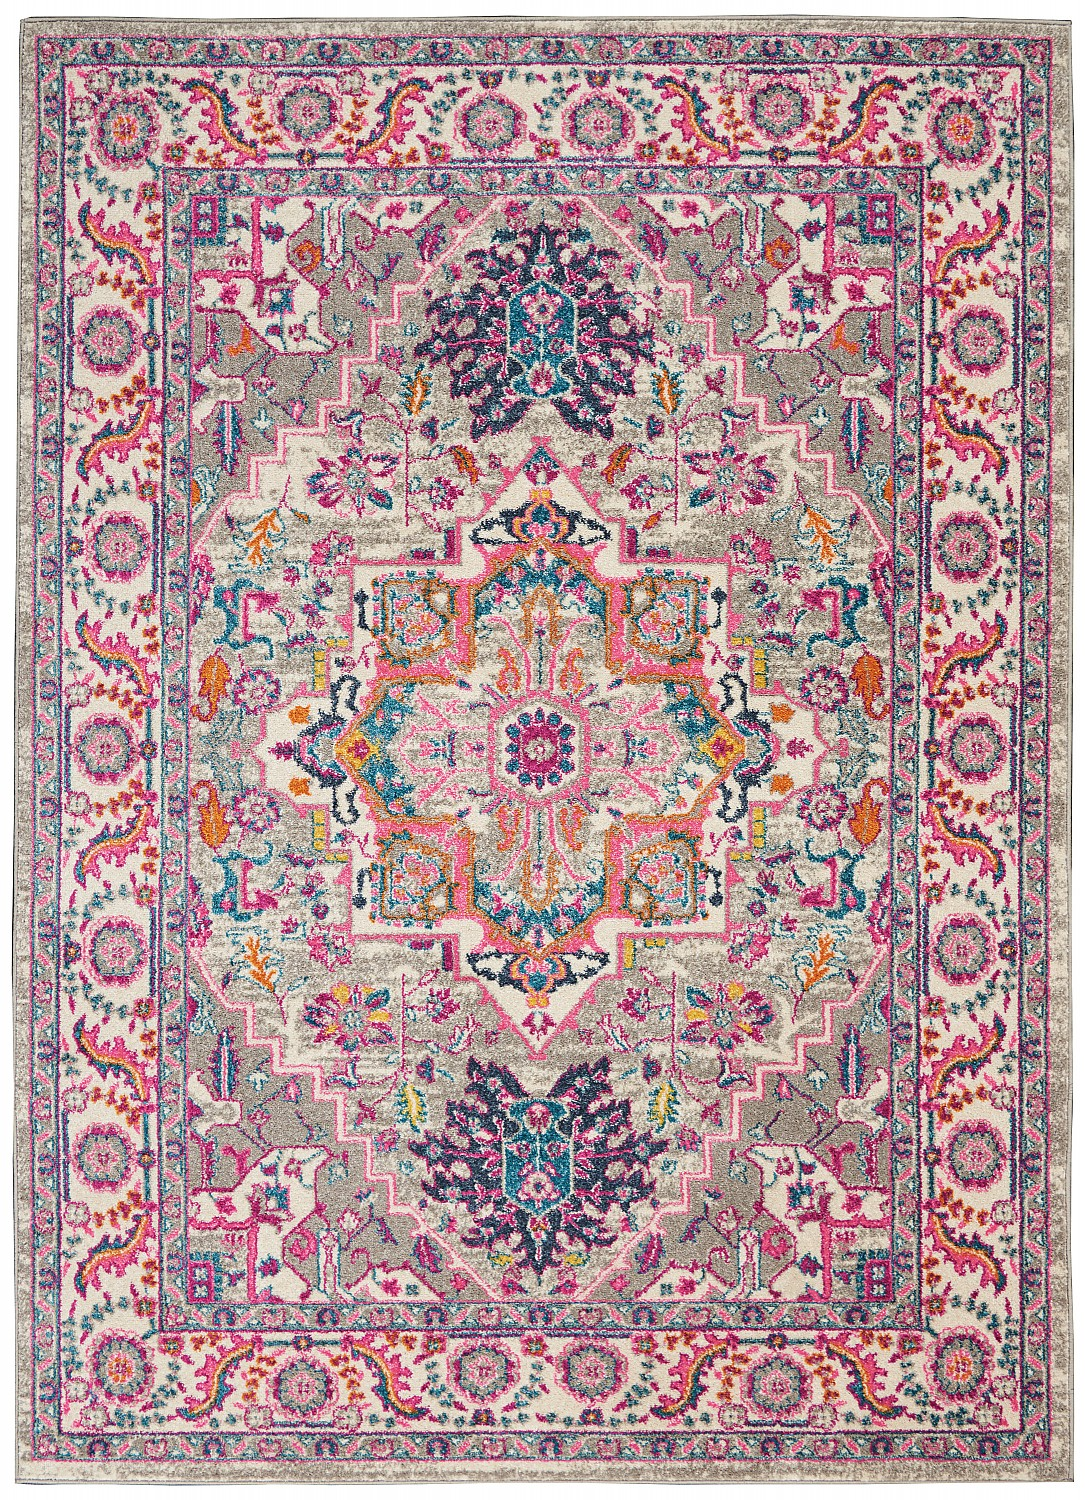 Passion Light Grey/Pink Area Rug Colorful Oriental Center Me